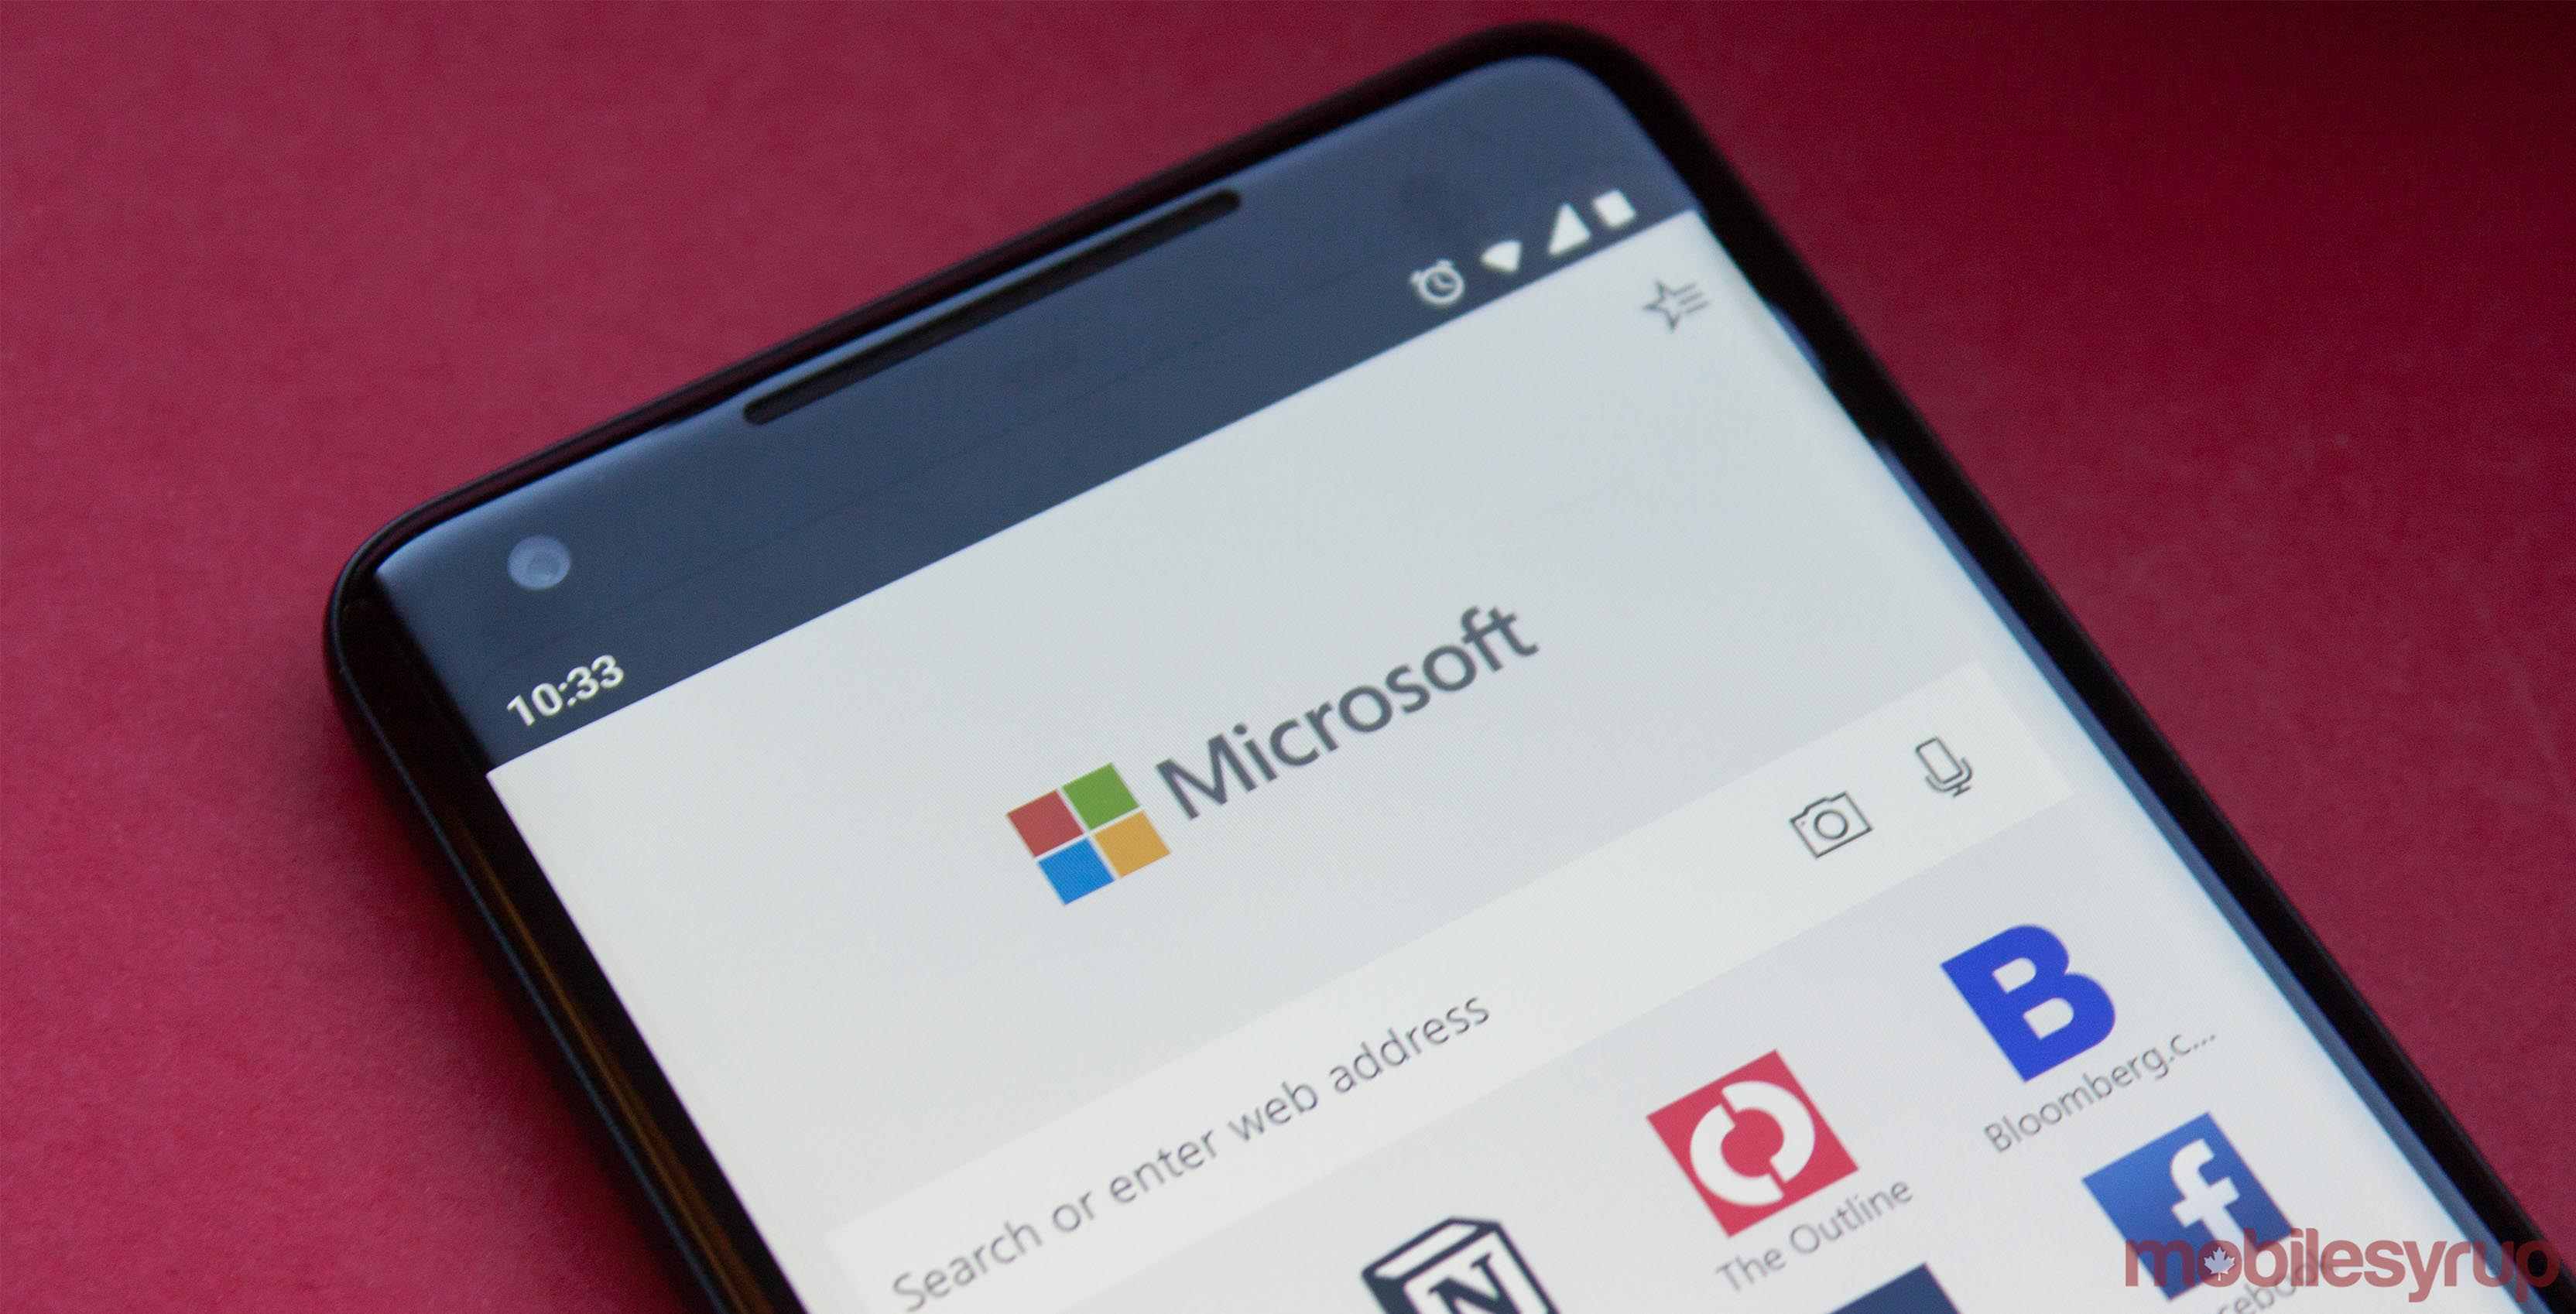 Microsoft is replacing Edge with its own Chrome browser